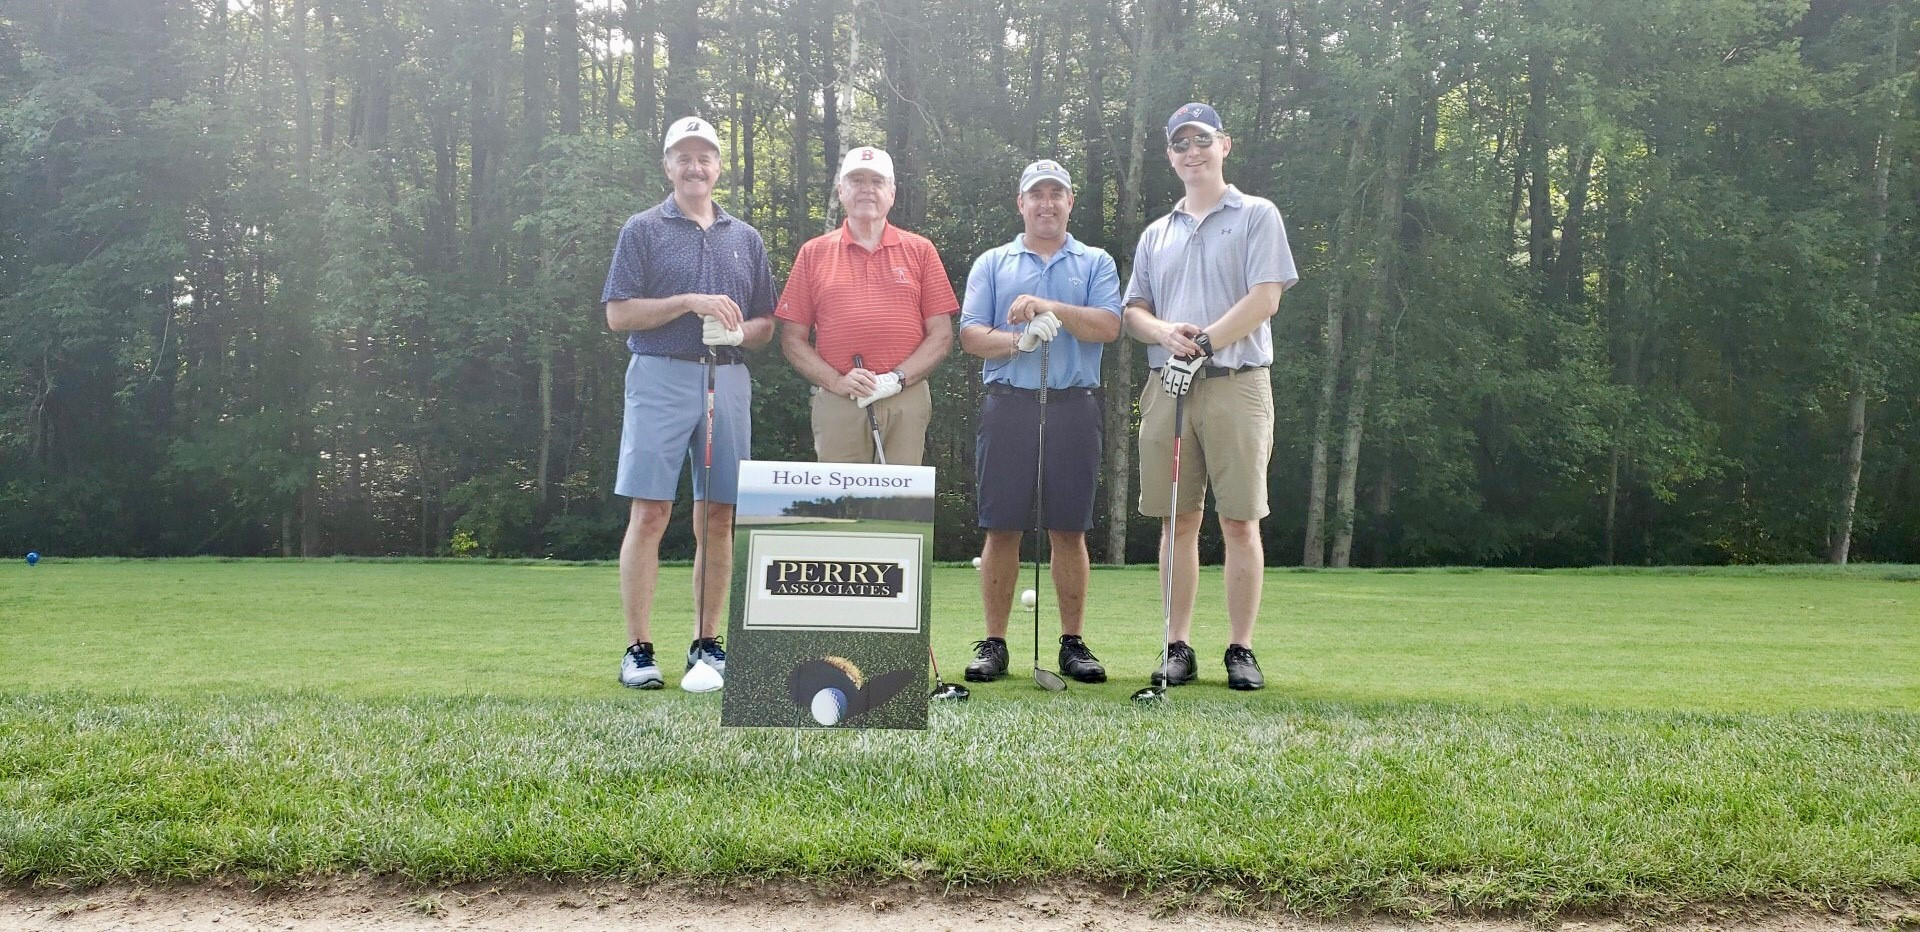 PA Staff participating in the Annual AGC Golf Classic at the Cape Club, Sharon – 7/22/19